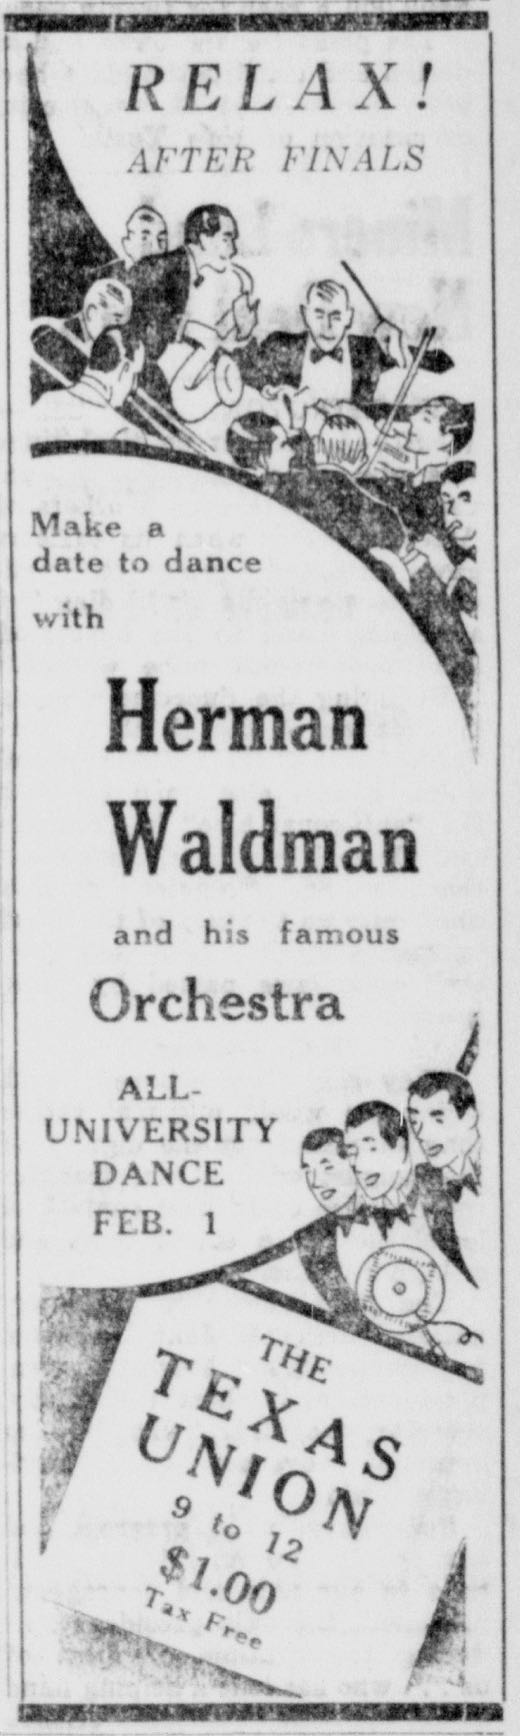 Advertisement for Herman Waldman dance